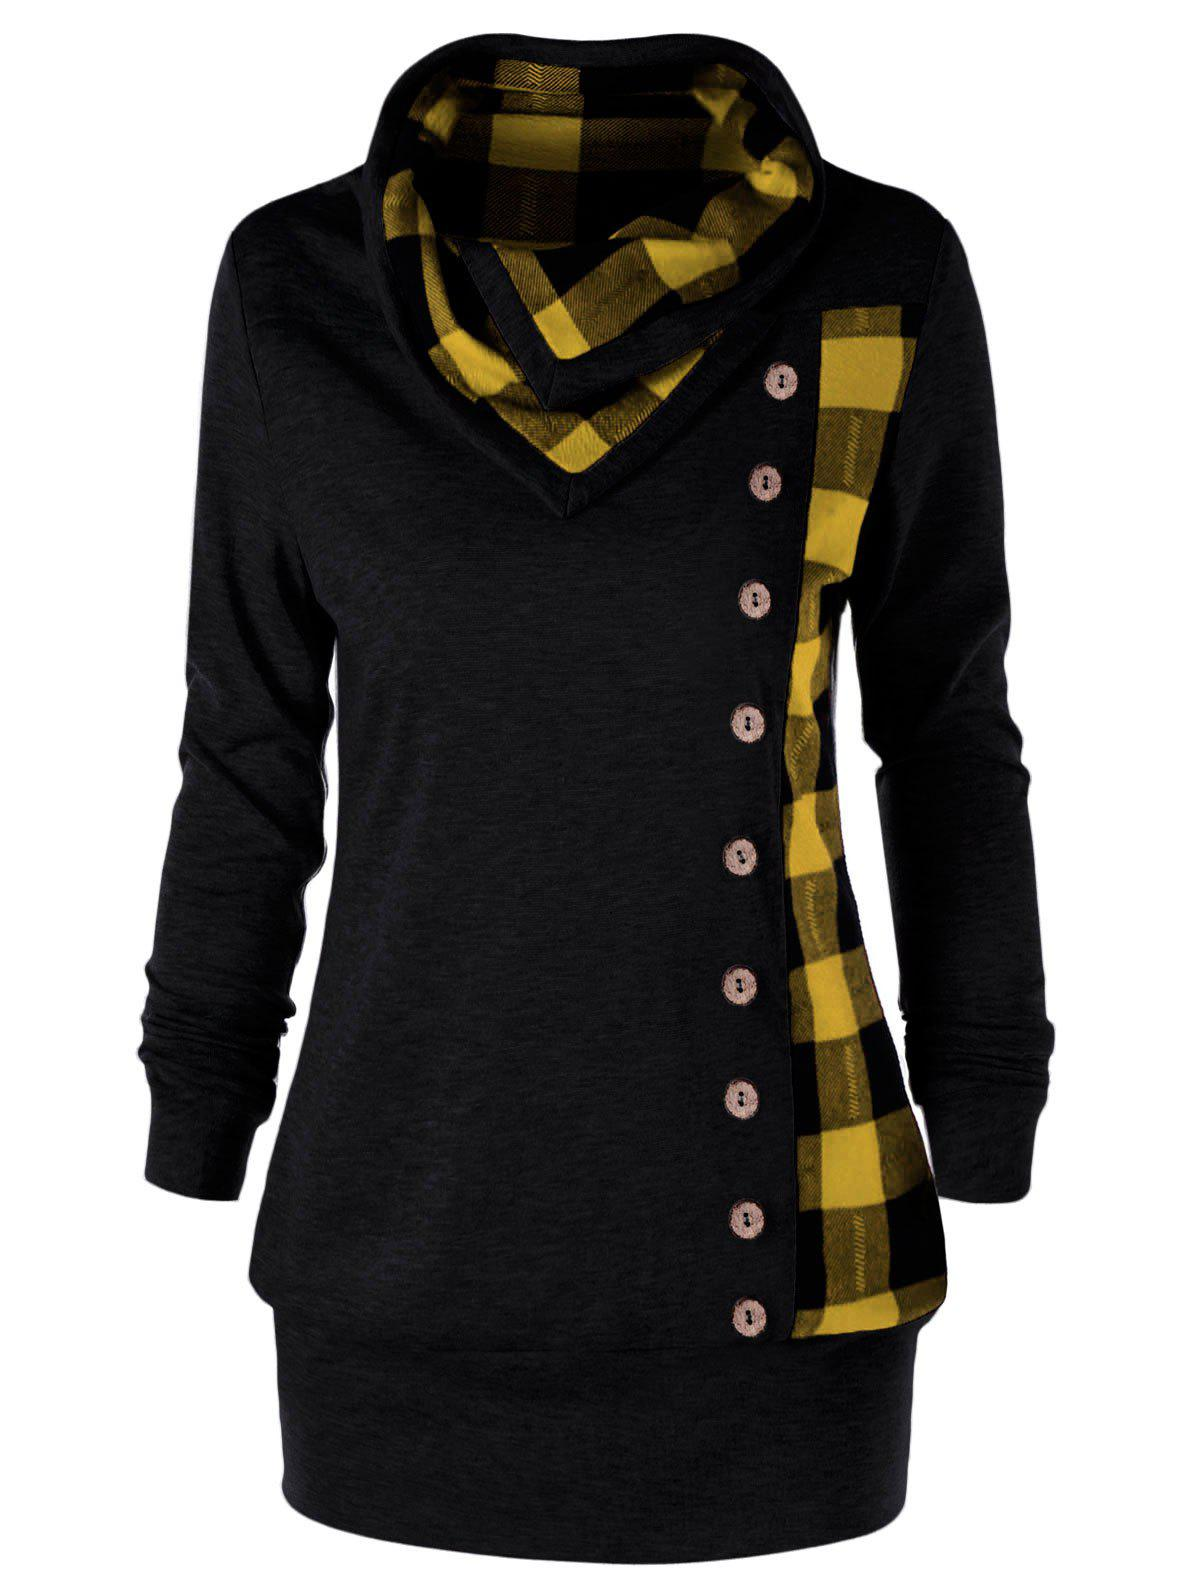 Plus Size Plaid Cowl Neck Tunic Sweatshirt